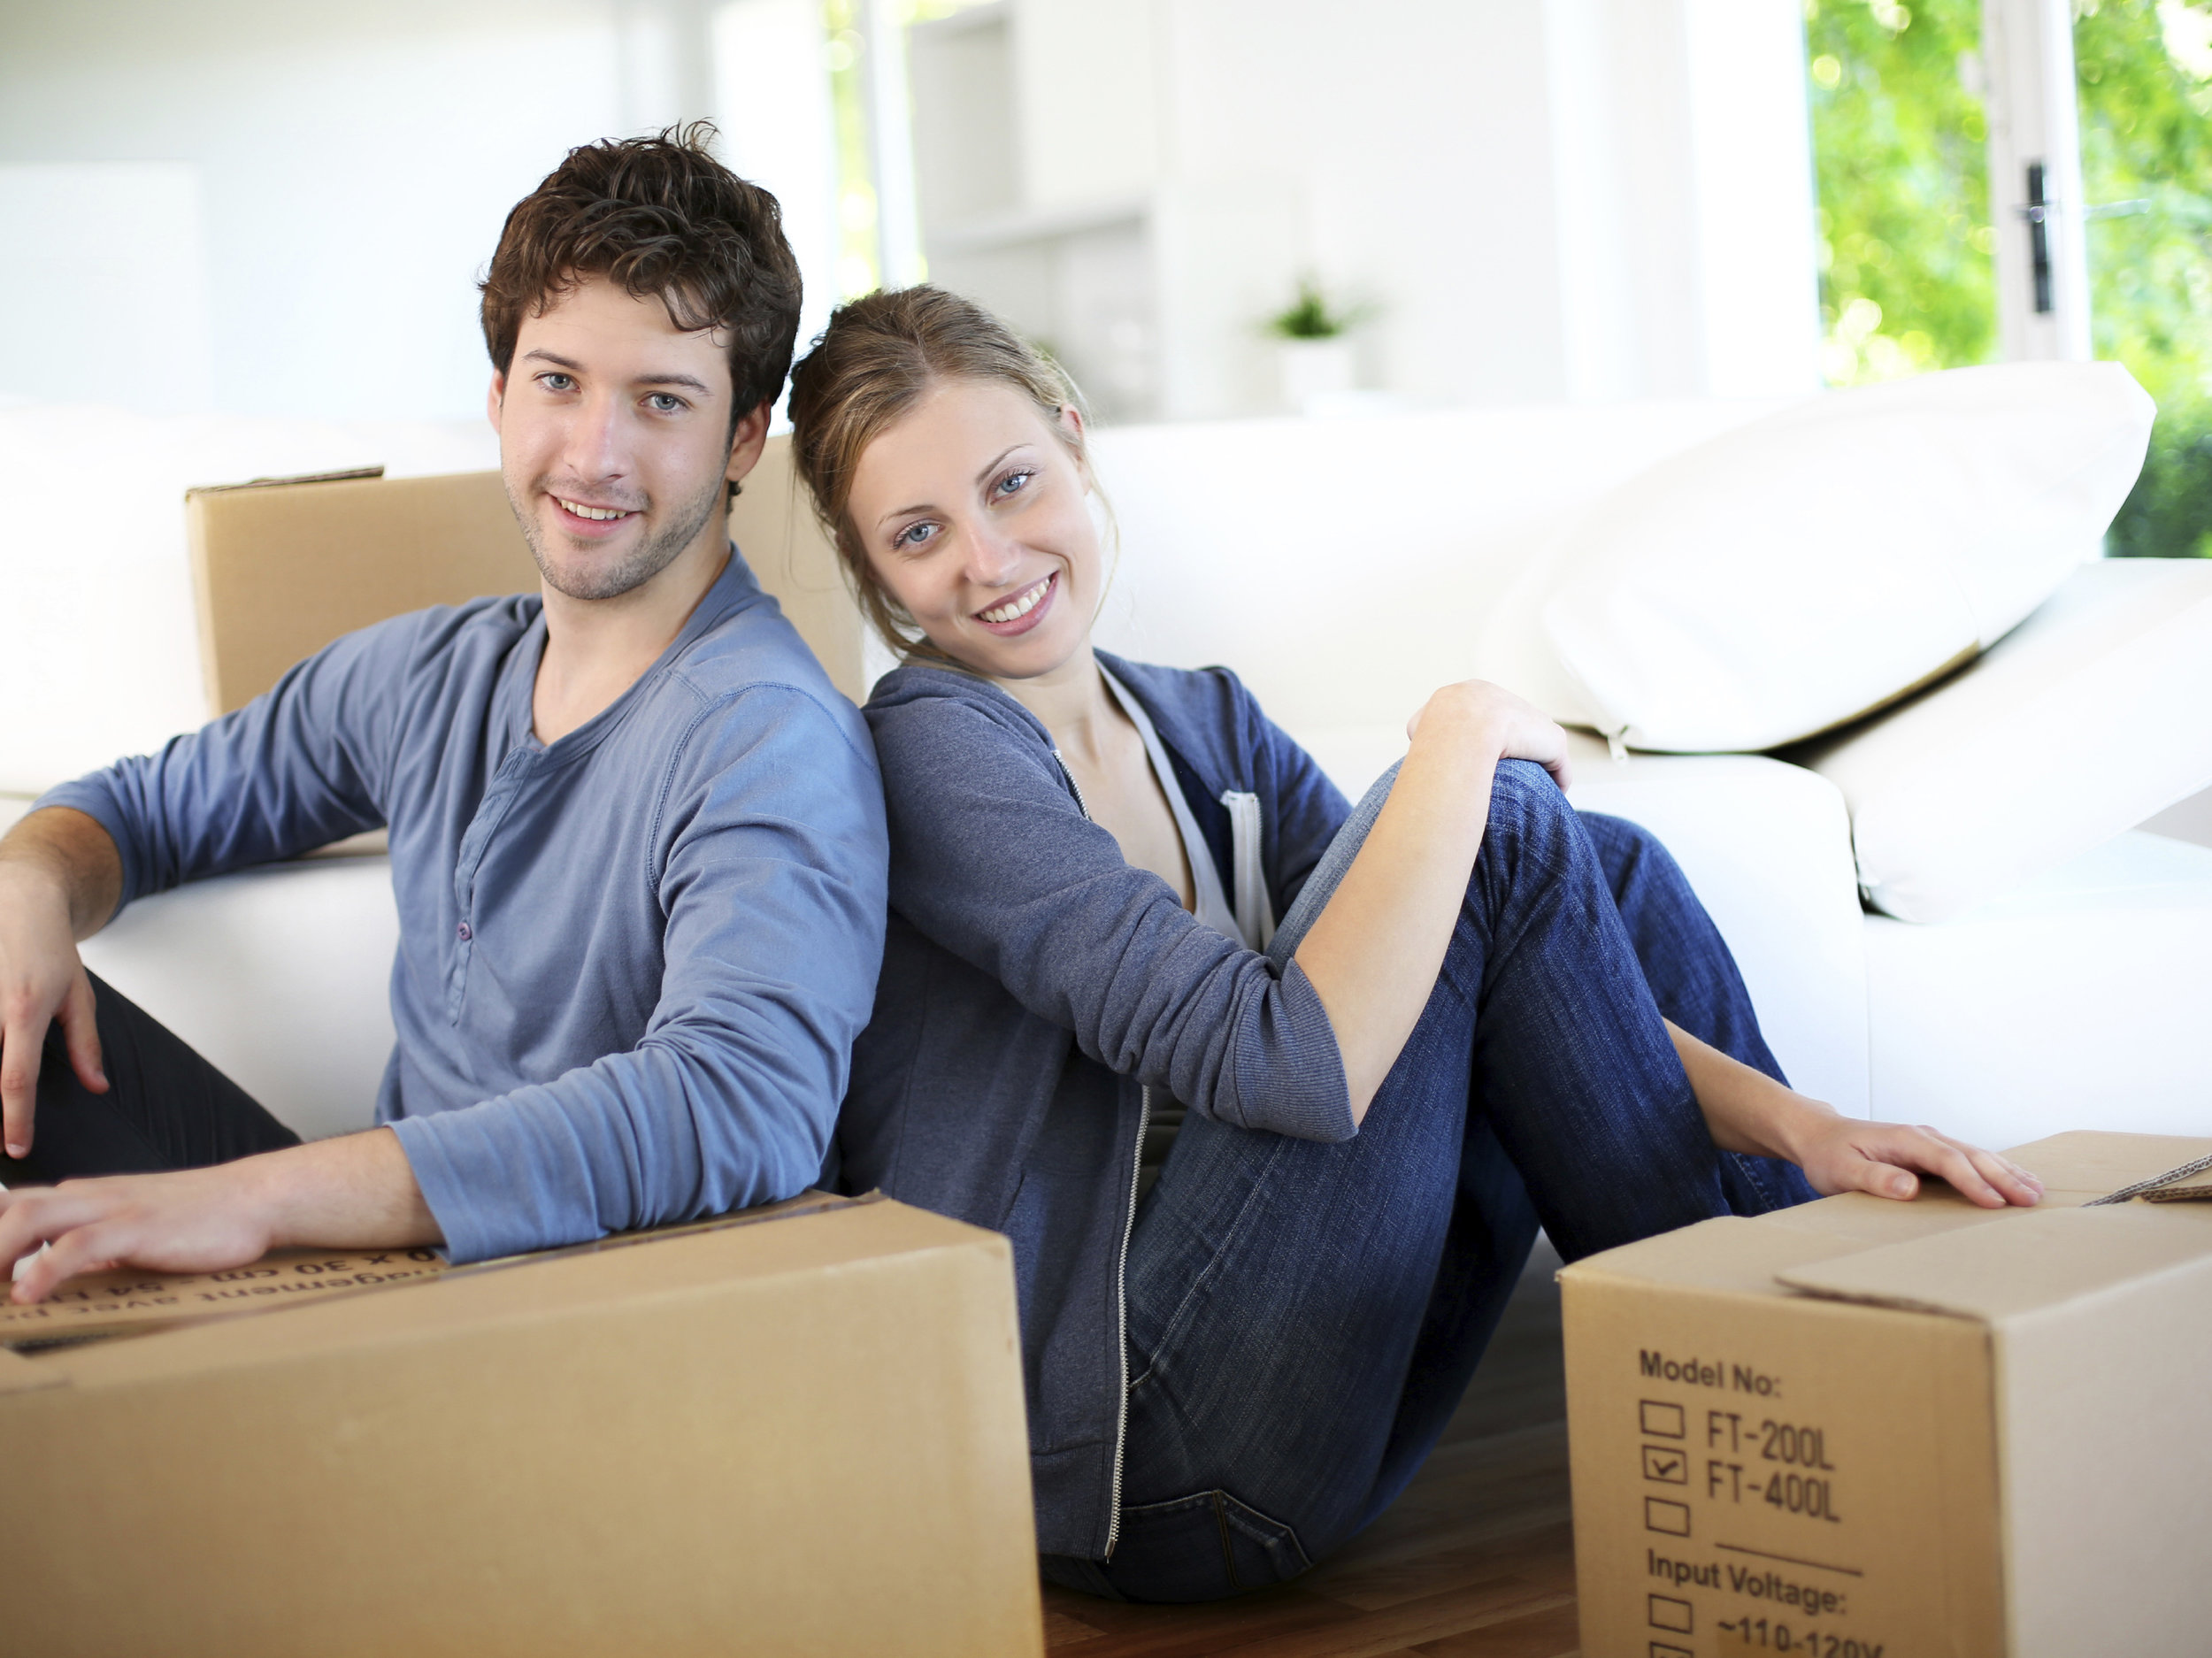 young-couple-sitting-in-house-with-boxes-mt2015.jpg